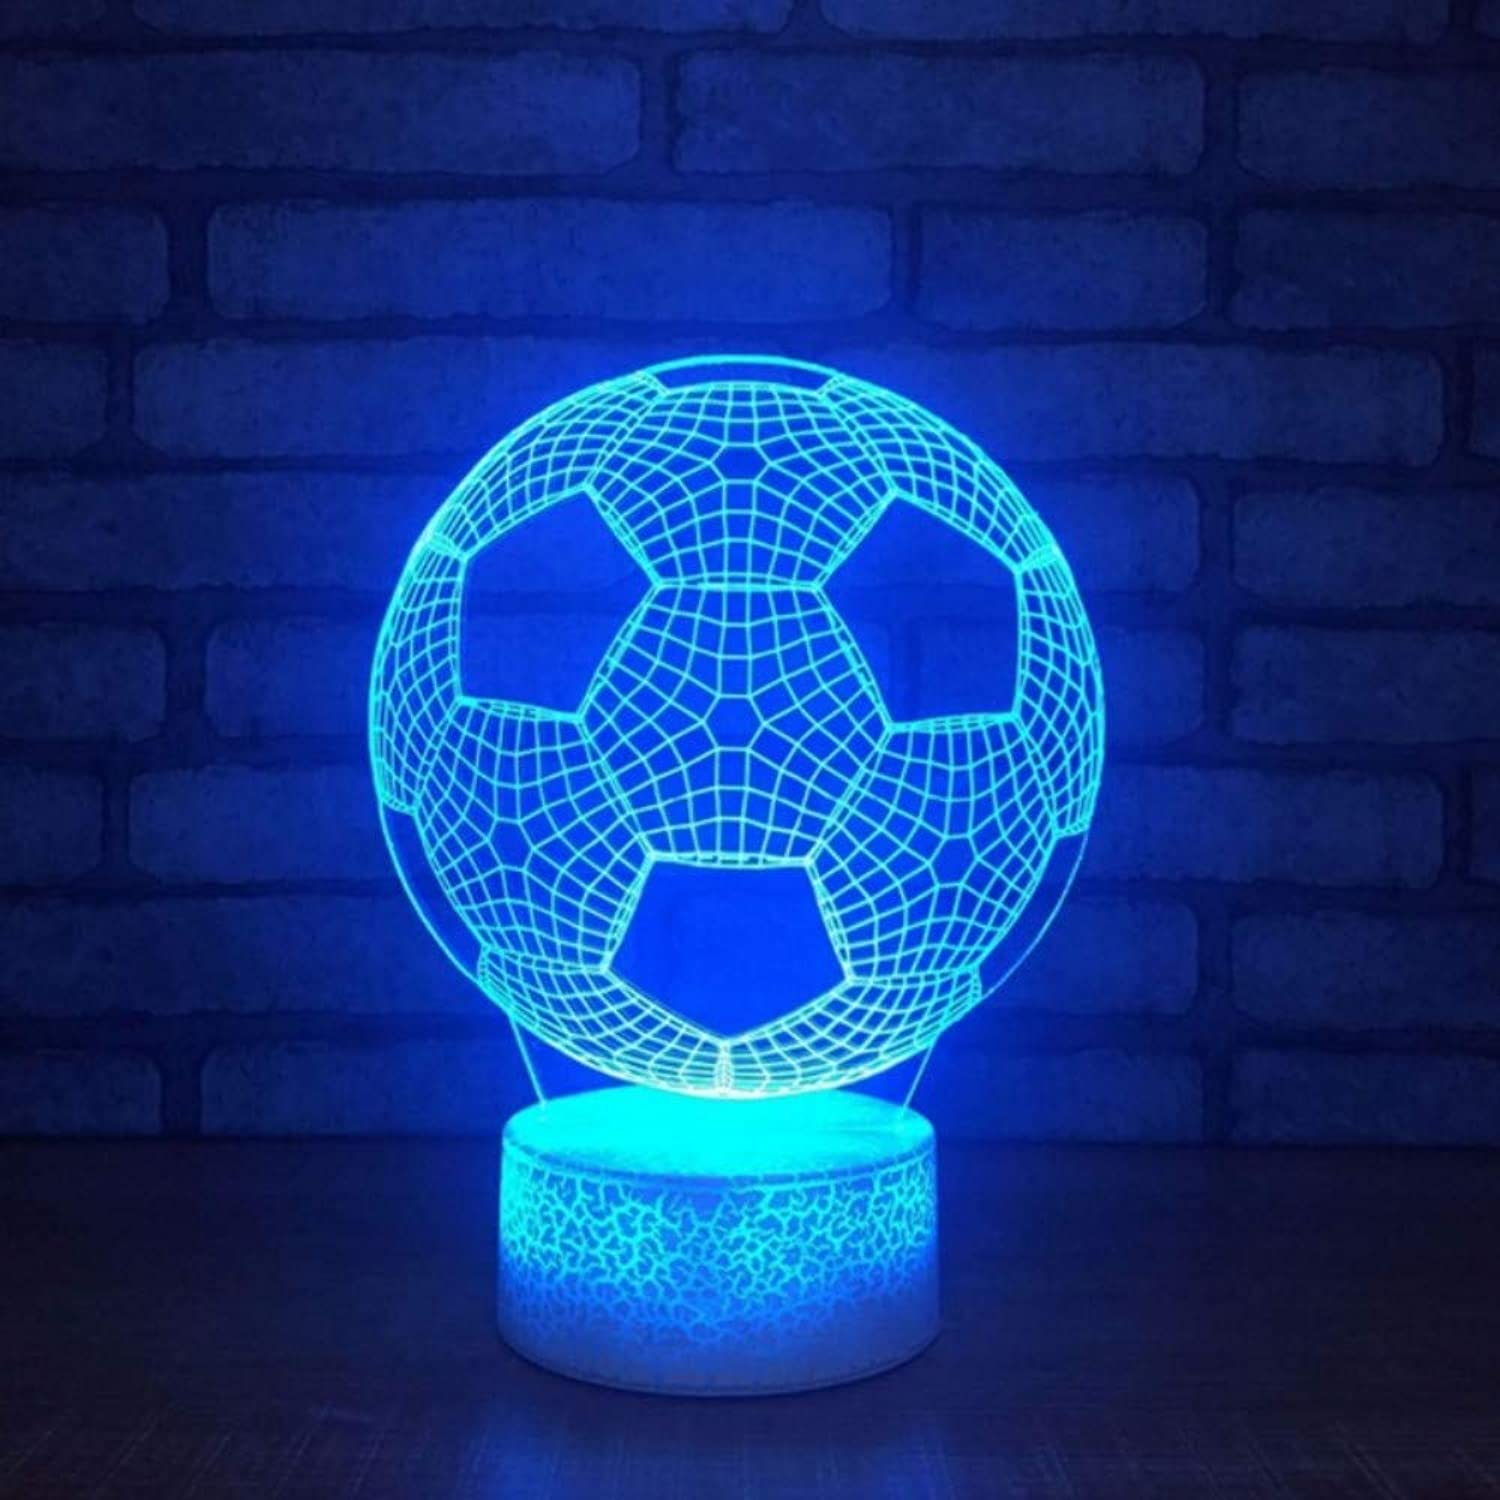 Zonxn Home Decor Bedroom colorful Gradient Football Shapes Touch Button 3D Led Visual Night Lights Table Lamp Mood Lighting Decoration